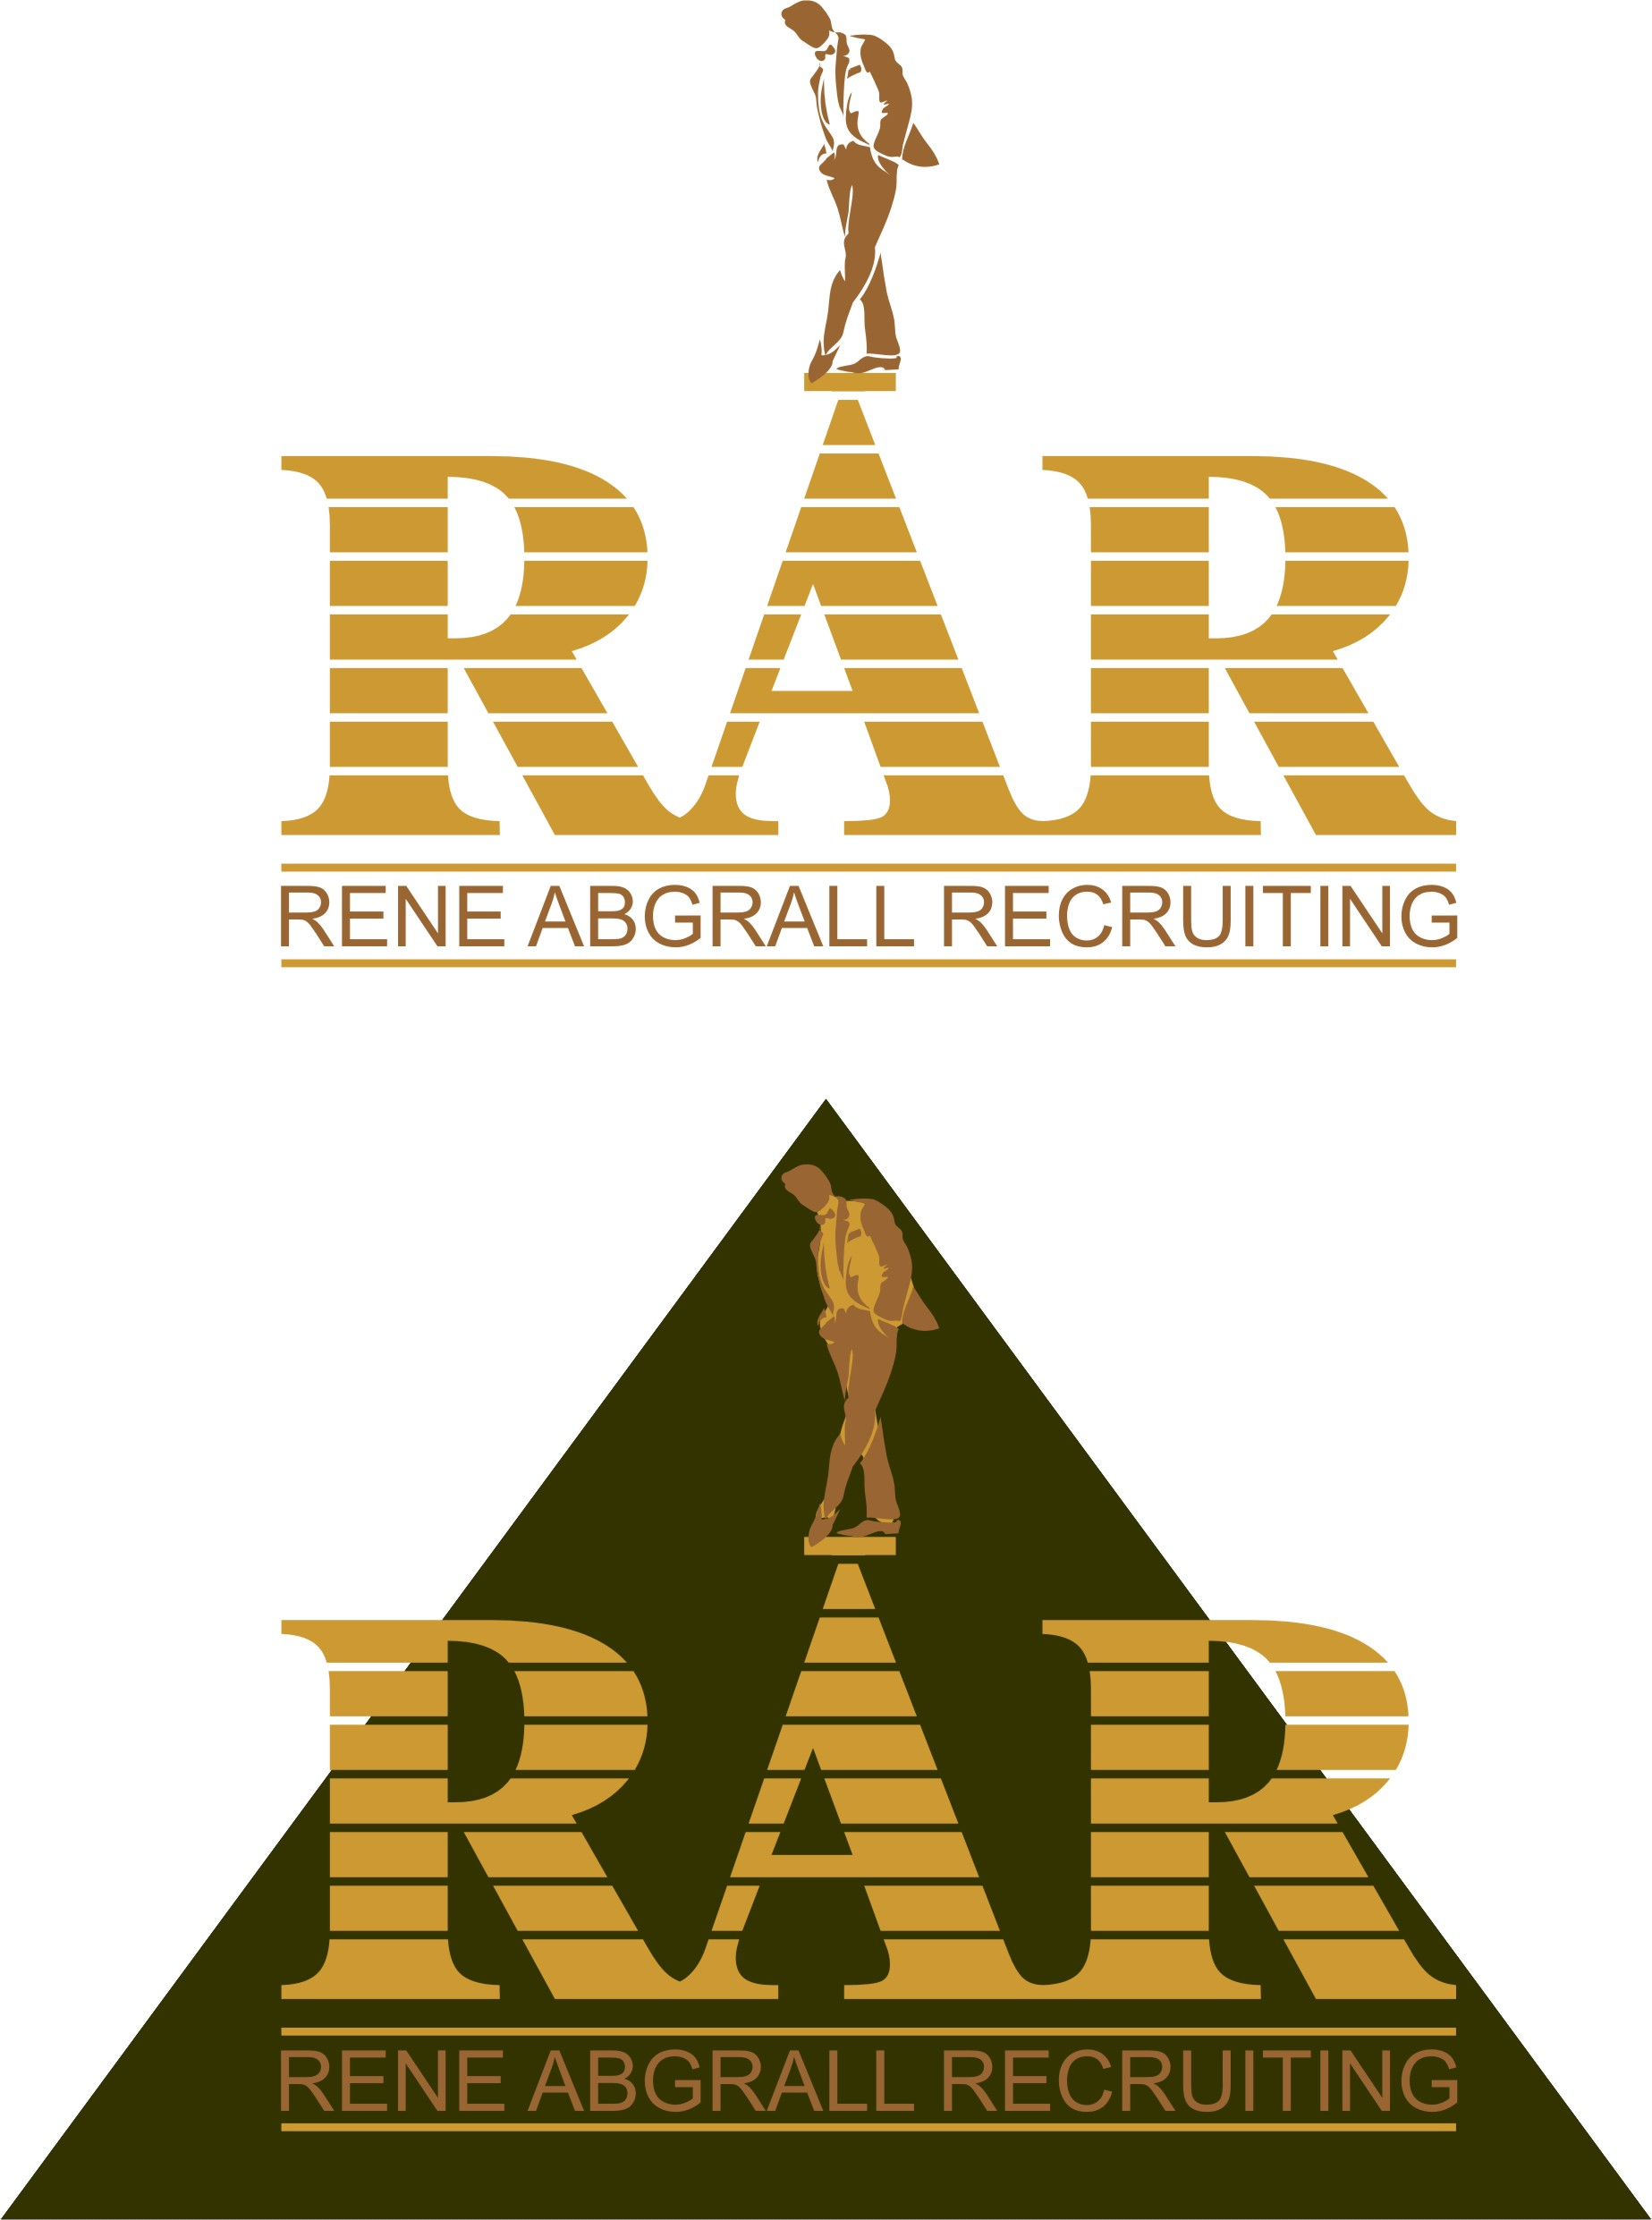 Logo Design by Korsunov Oleg - Entry No. 8 in the Logo Design Contest Artistic Logo Design for René Abgrall Recruiting.